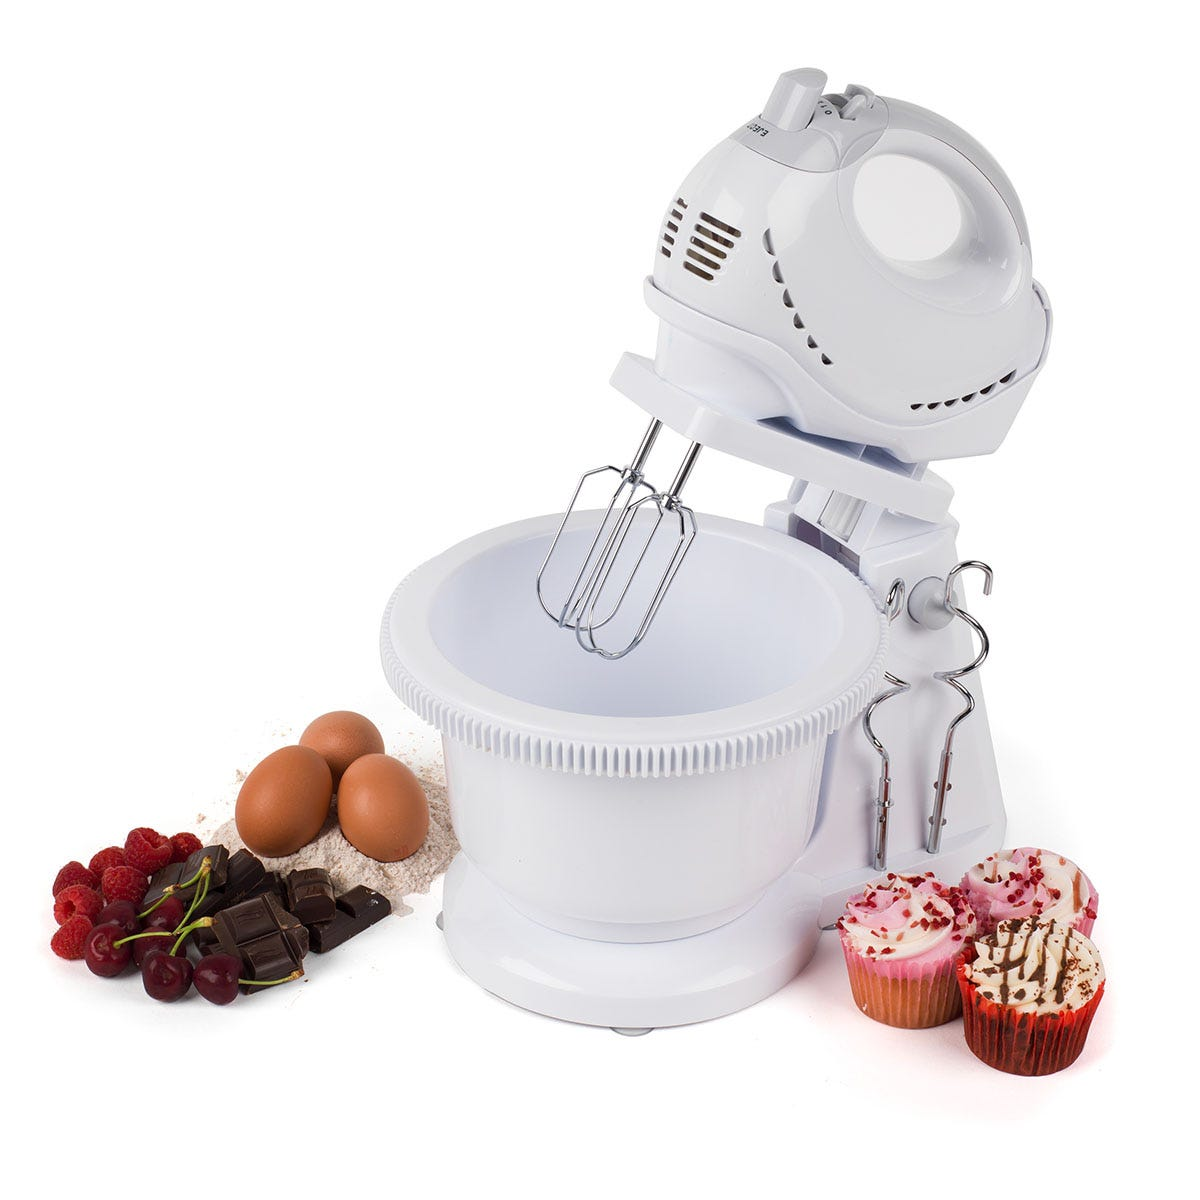 Progress EK3593P 2-in-1 250W Electric Twin Hand and Stand Mixer - White